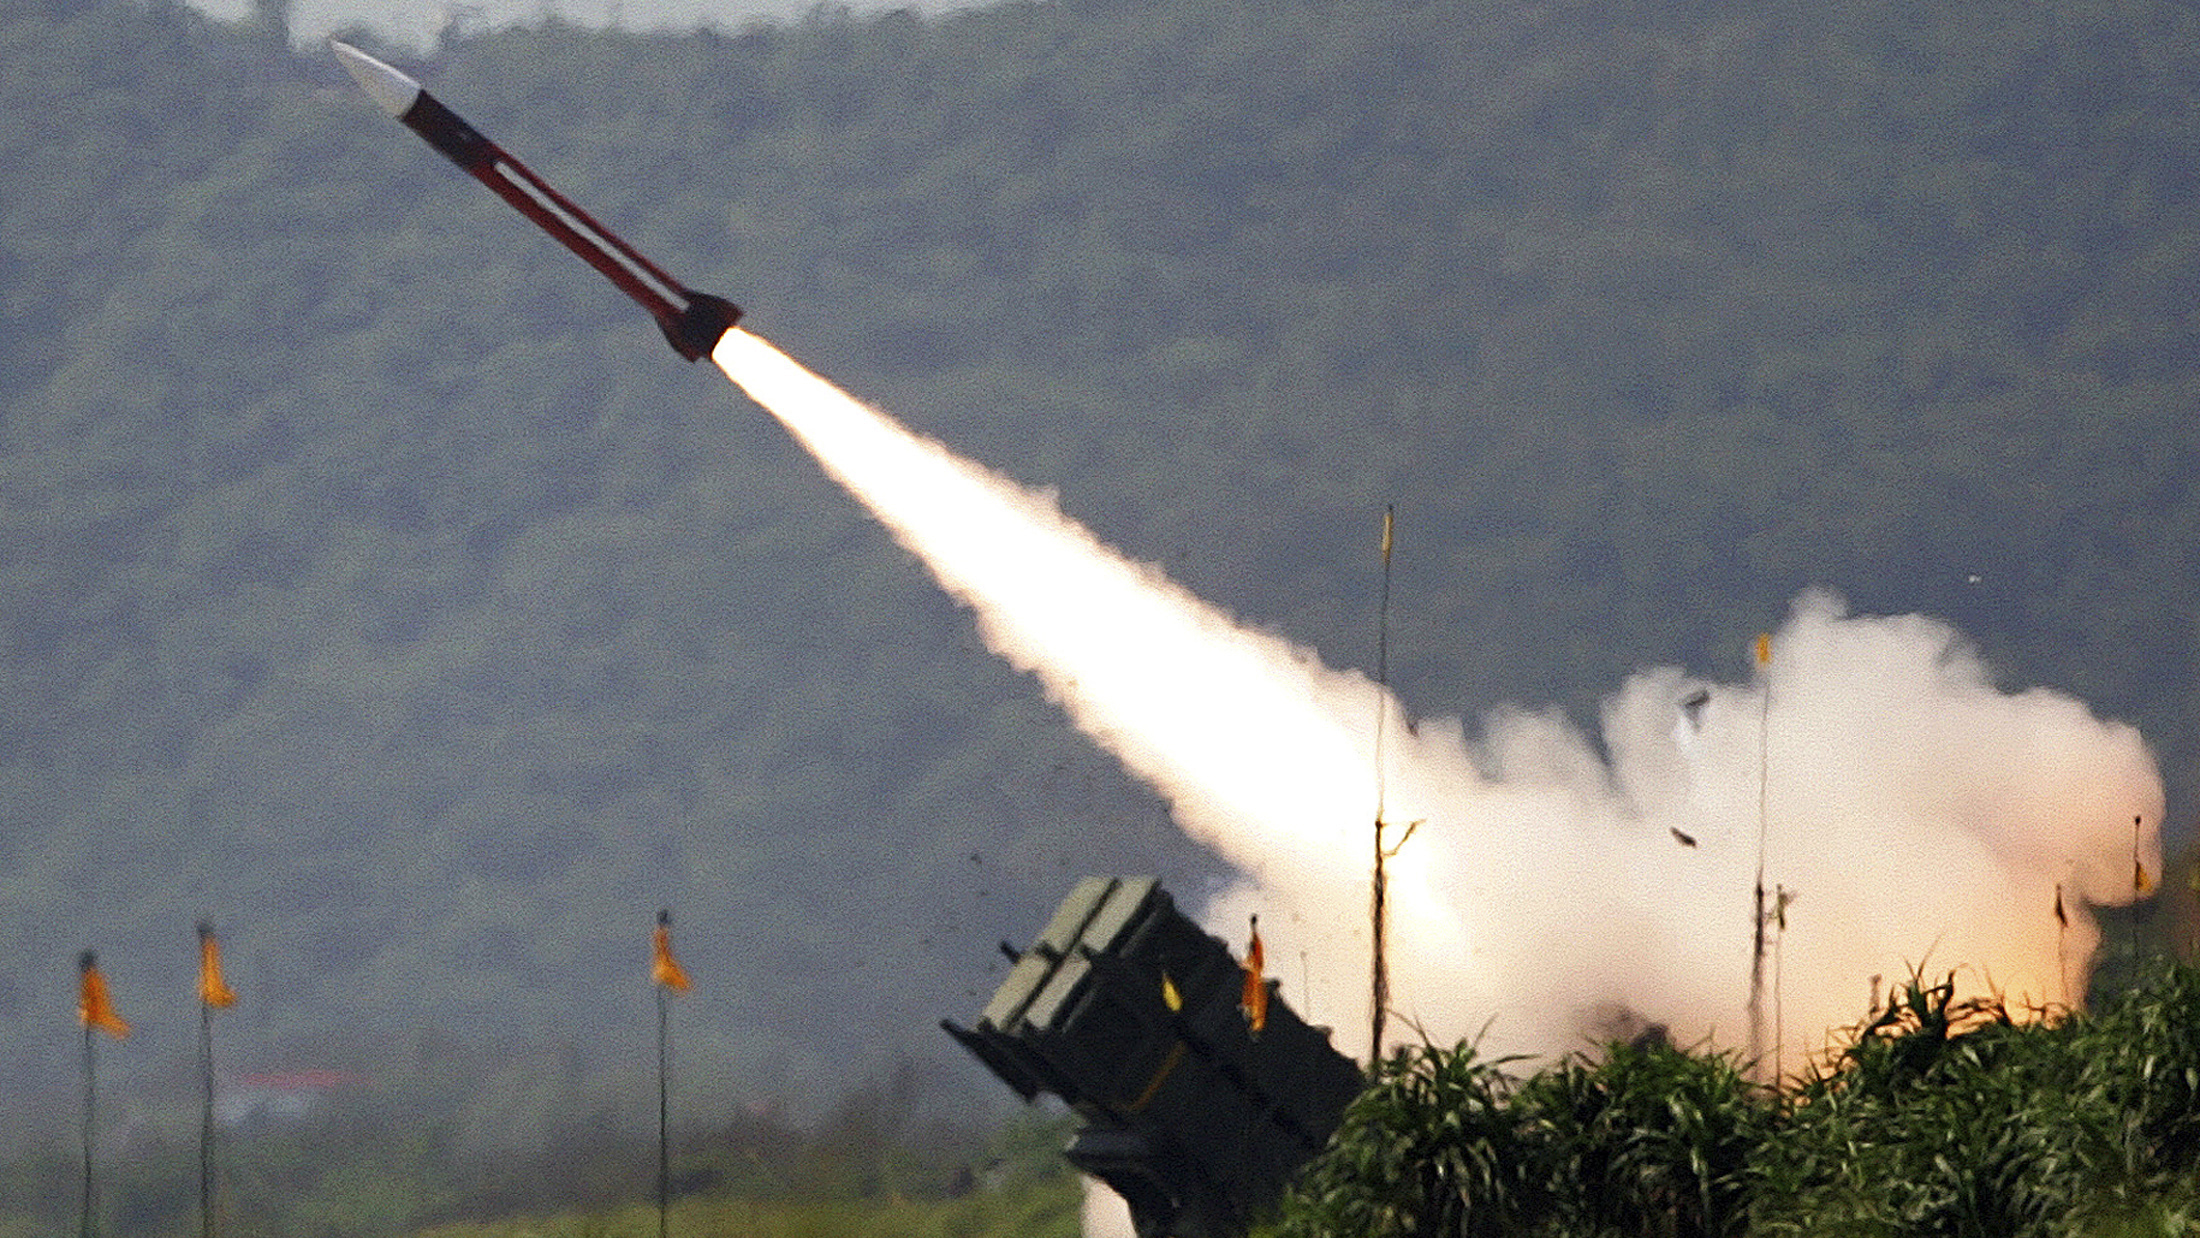 A U.S.-made Patriot missile is launched during the annual Han Kuang military exercise in Ilan county, 80km (49 miles) west of Taipei July 20, 2006. The Obama administration notified Congress on January 29, 2010 of its first proposed arms sales to Taiwan, a potential $6.4 billion package bound to add to rising U.S.-China strains over trade and cyber security. China warned on January 30, 2010 that Washington's announcement of arms sales to Taiwan would badly hurt ties between the two global powers, widening rifts in their far-reaching relationship.  REUTERS/Richard Chung (TAIWAN - Tags: MILITARY POLITICS) - RTR29MSR